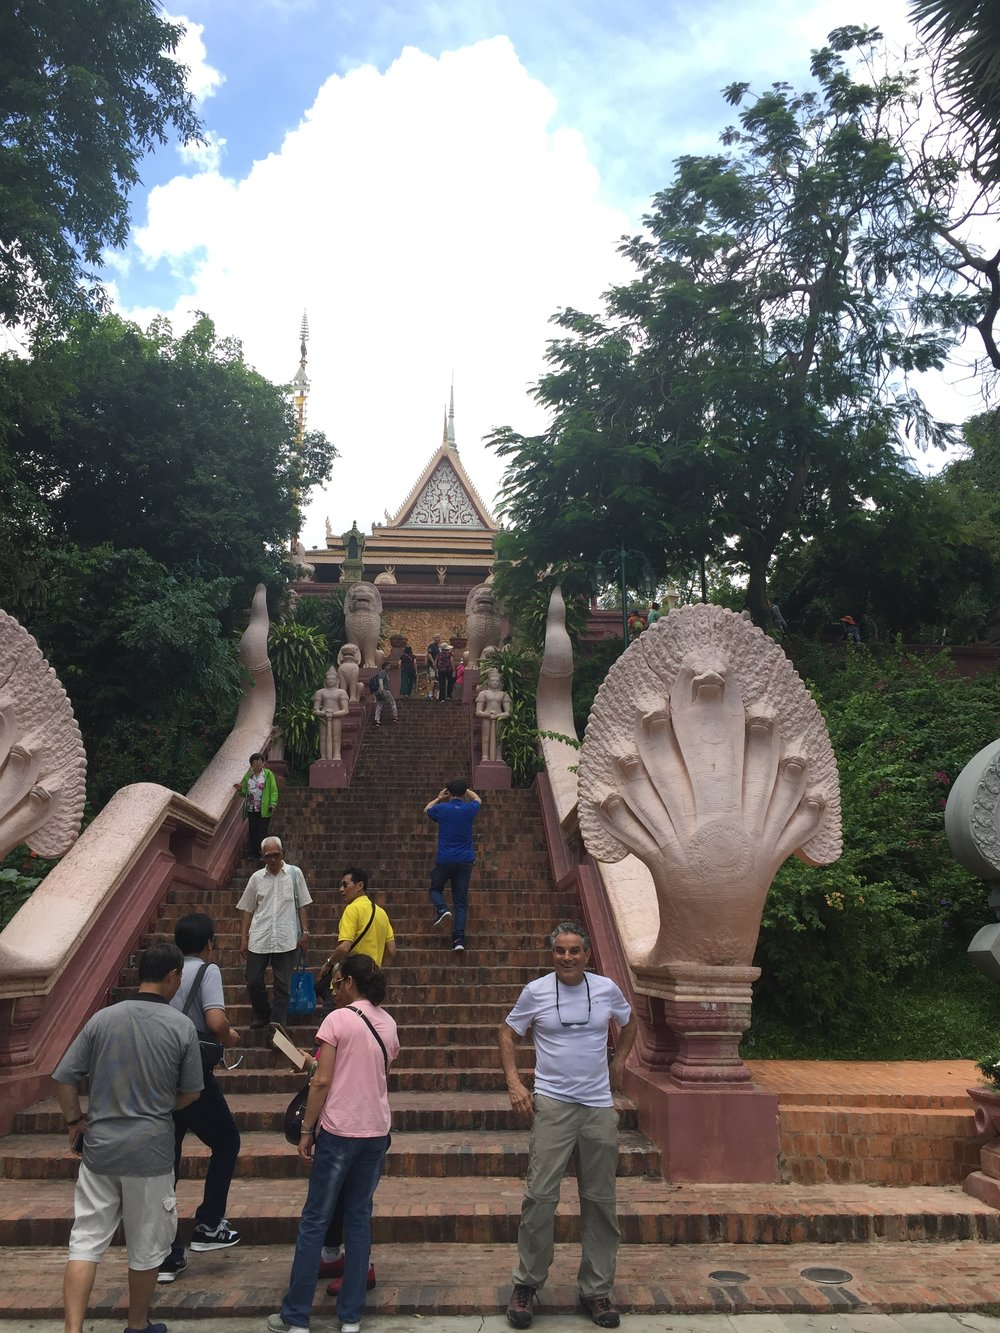 Steps to the pagoda